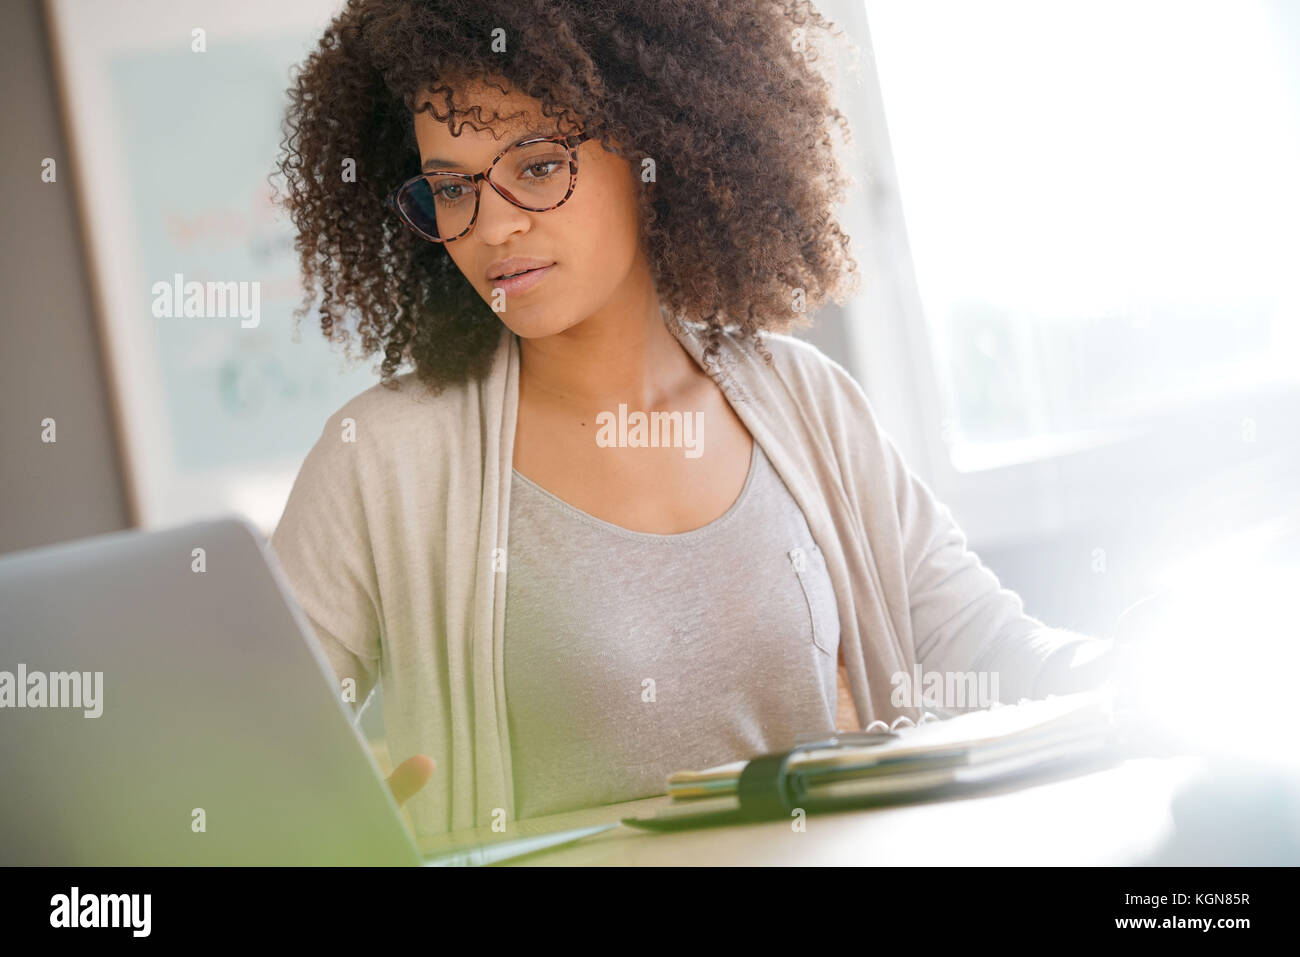 Mixed race woman working from home on laptop computer - Stock Image